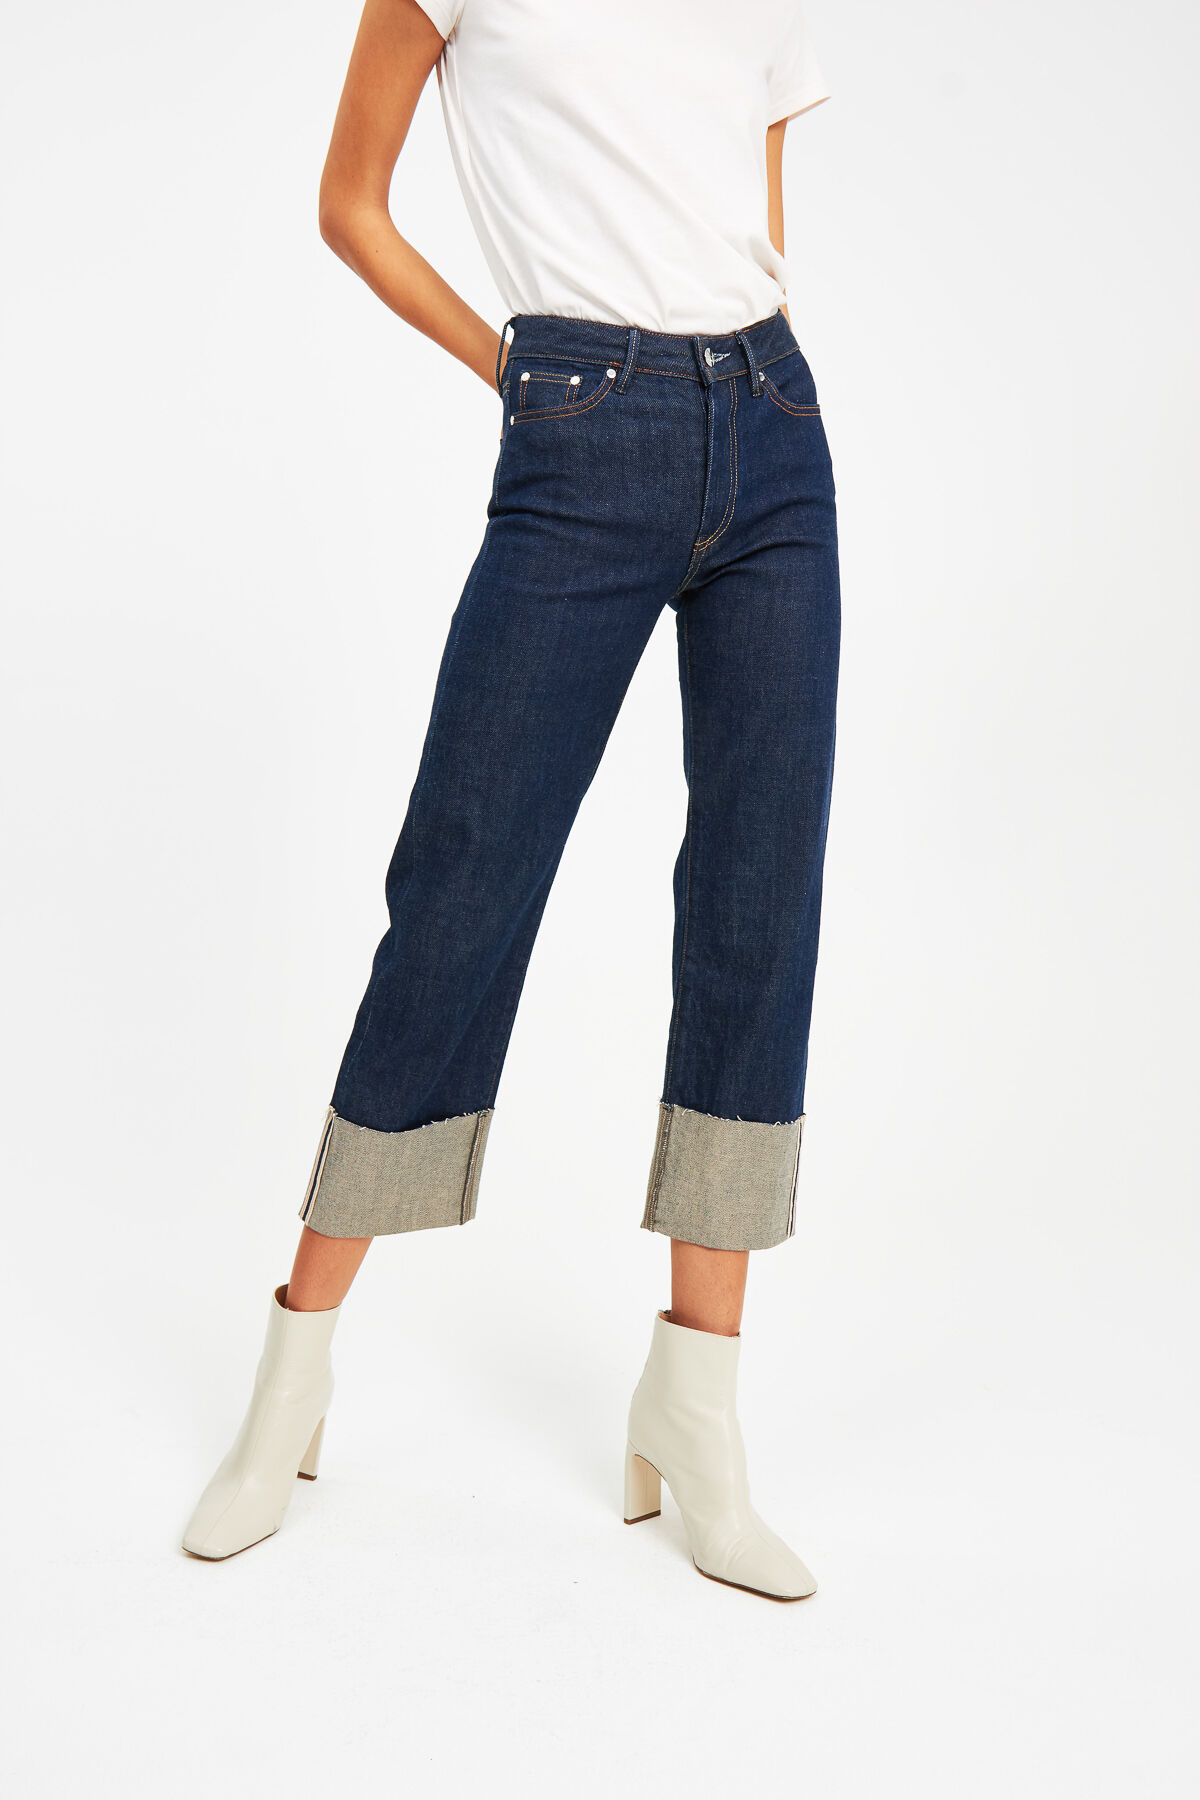 KELLY Selvedge denim - Wide Leg Fit